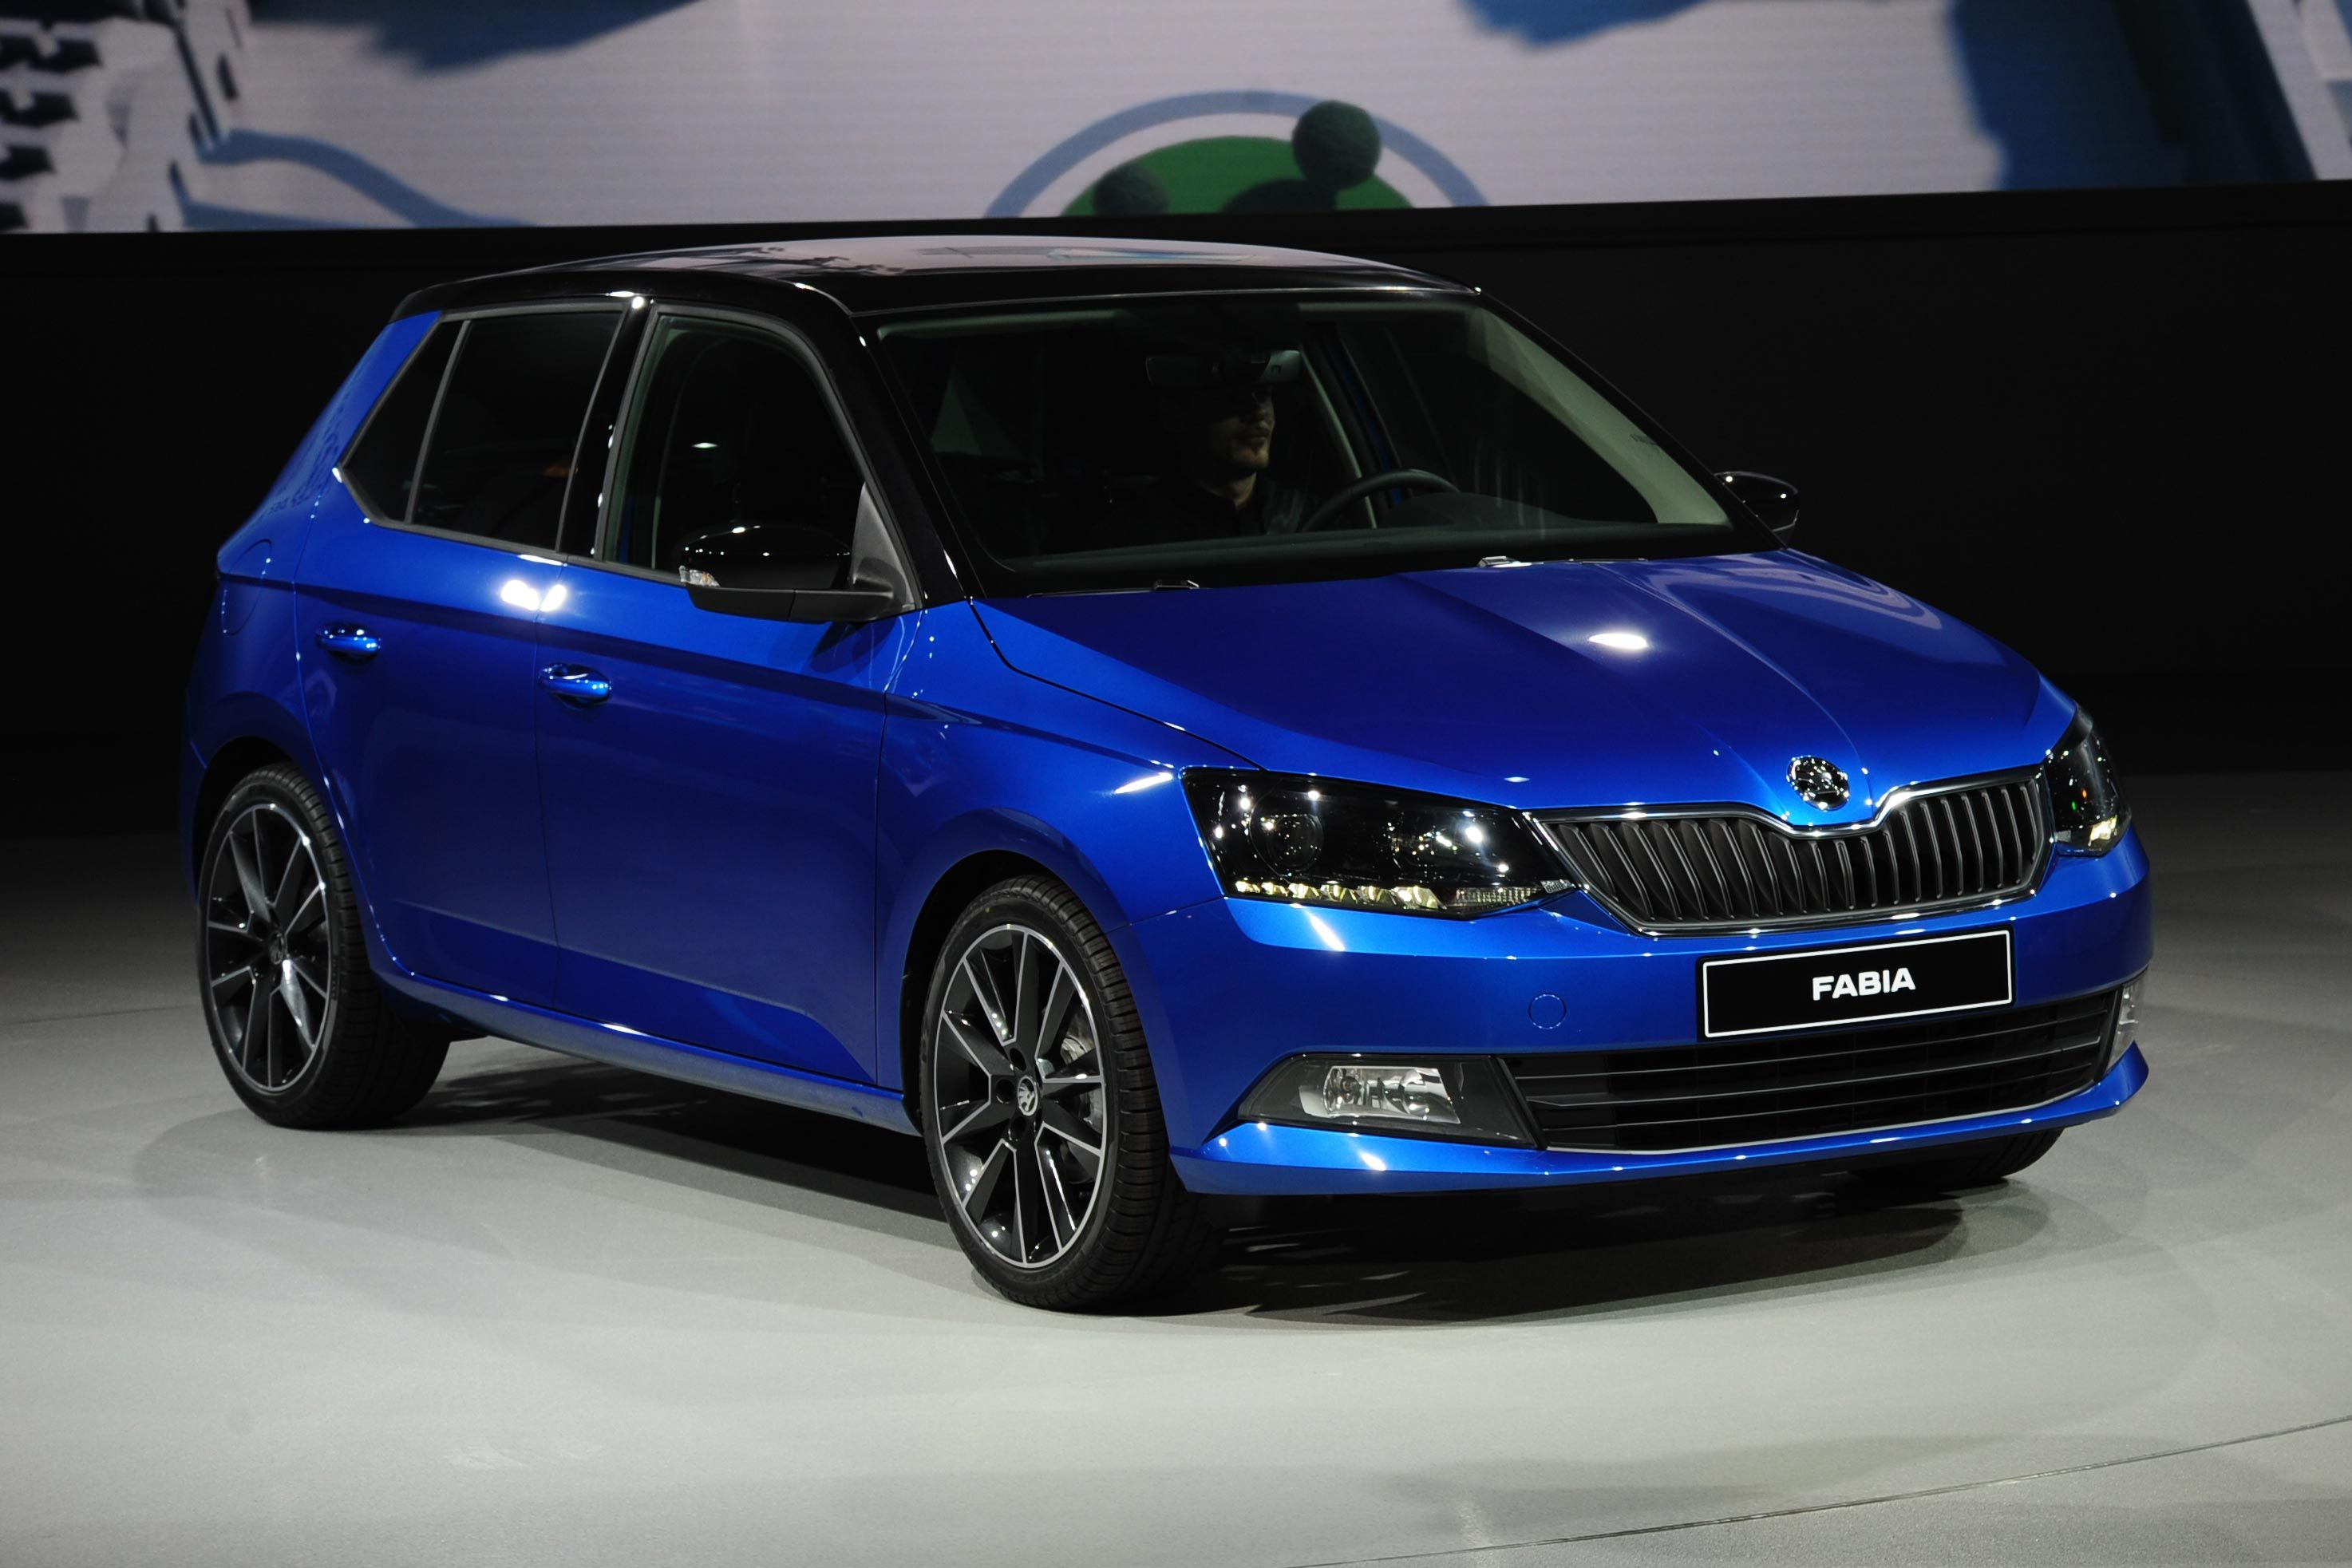 skoda fabia monte carlo wagon i 39 m buying one vehicles of desire pinterest skoda fabia. Black Bedroom Furniture Sets. Home Design Ideas